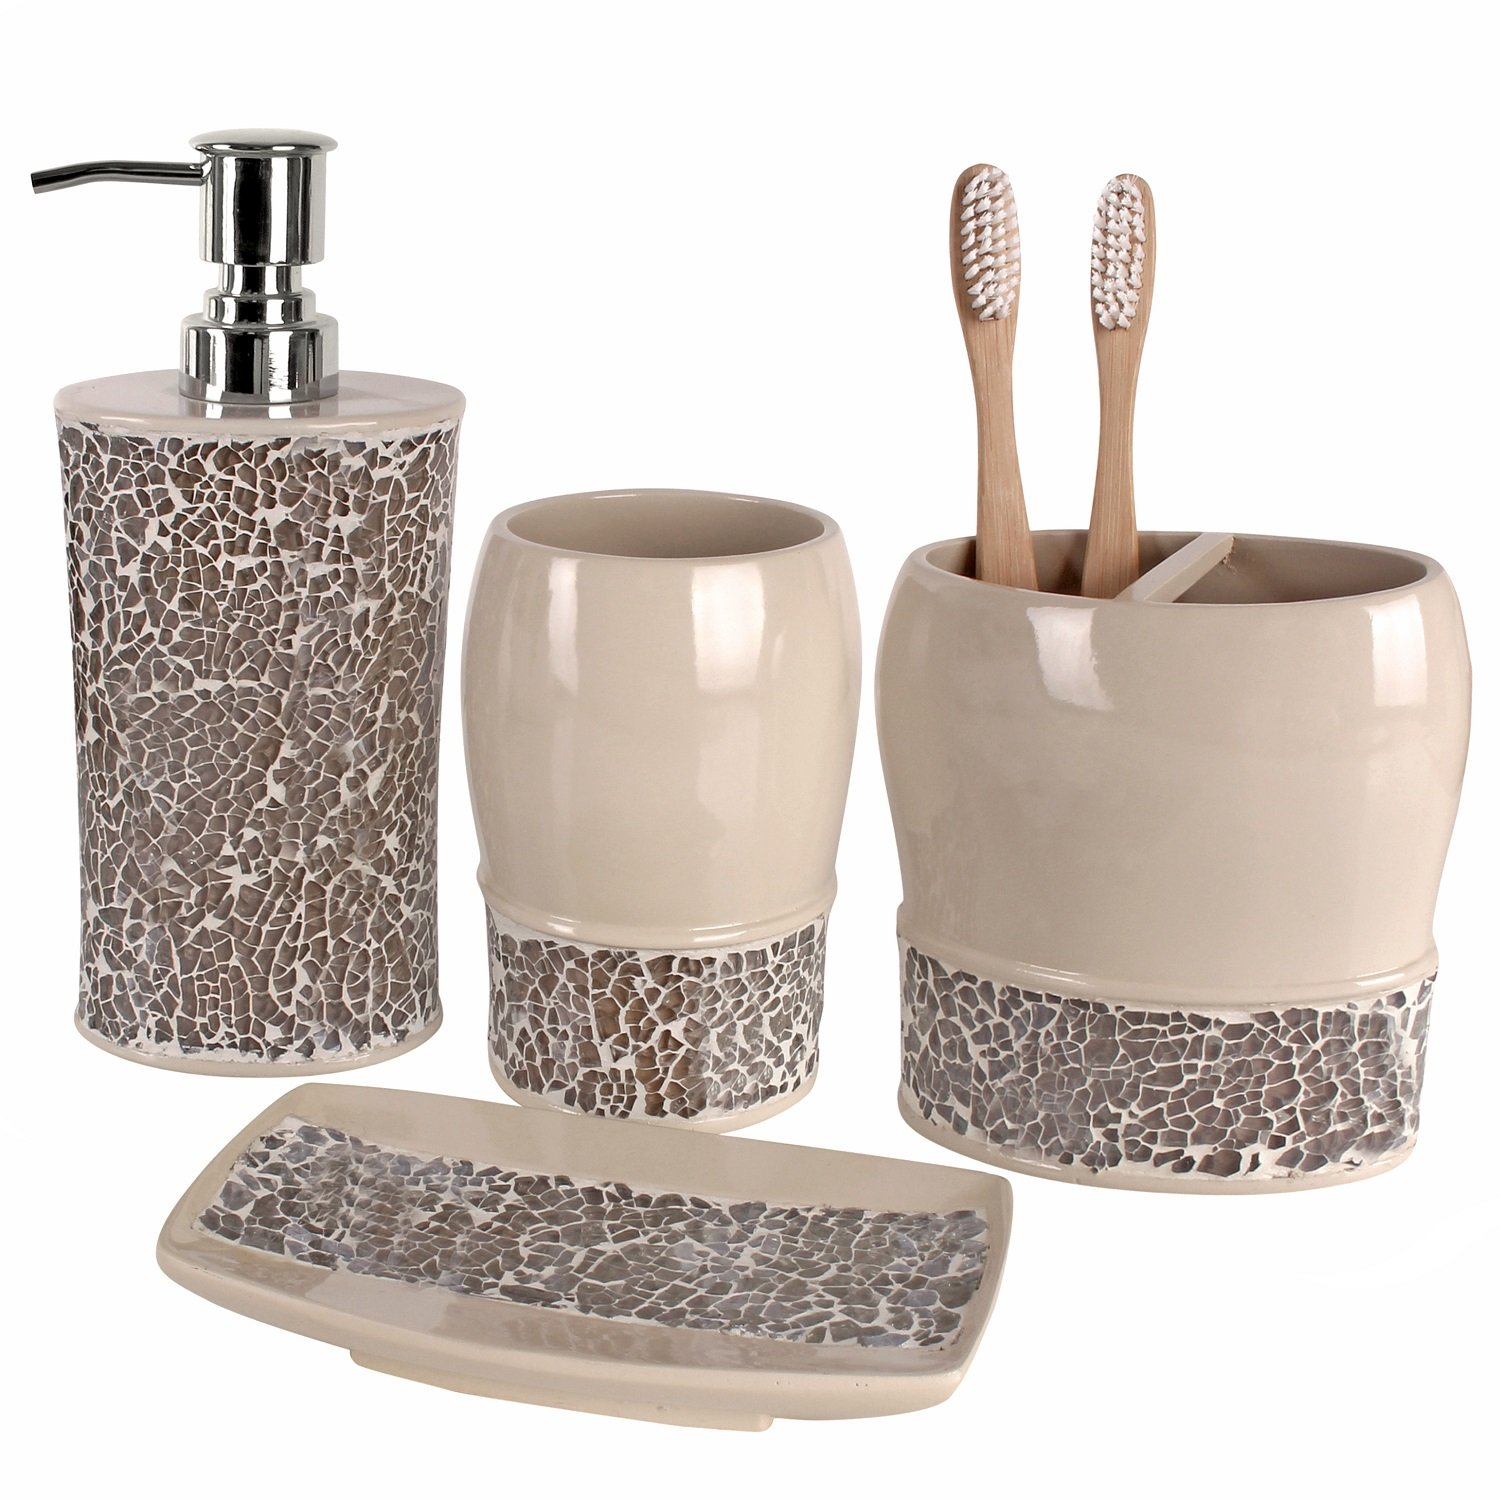 Creative Scents Broccostella Bath Ensemble, 4 Piece Bathroom Accessories Set, Broccostella Collection Bath Set Features Soap Pump, Toothbrush Holder,Tumbler, Soap Dish-Dazzling Accents of Mosaic Glass